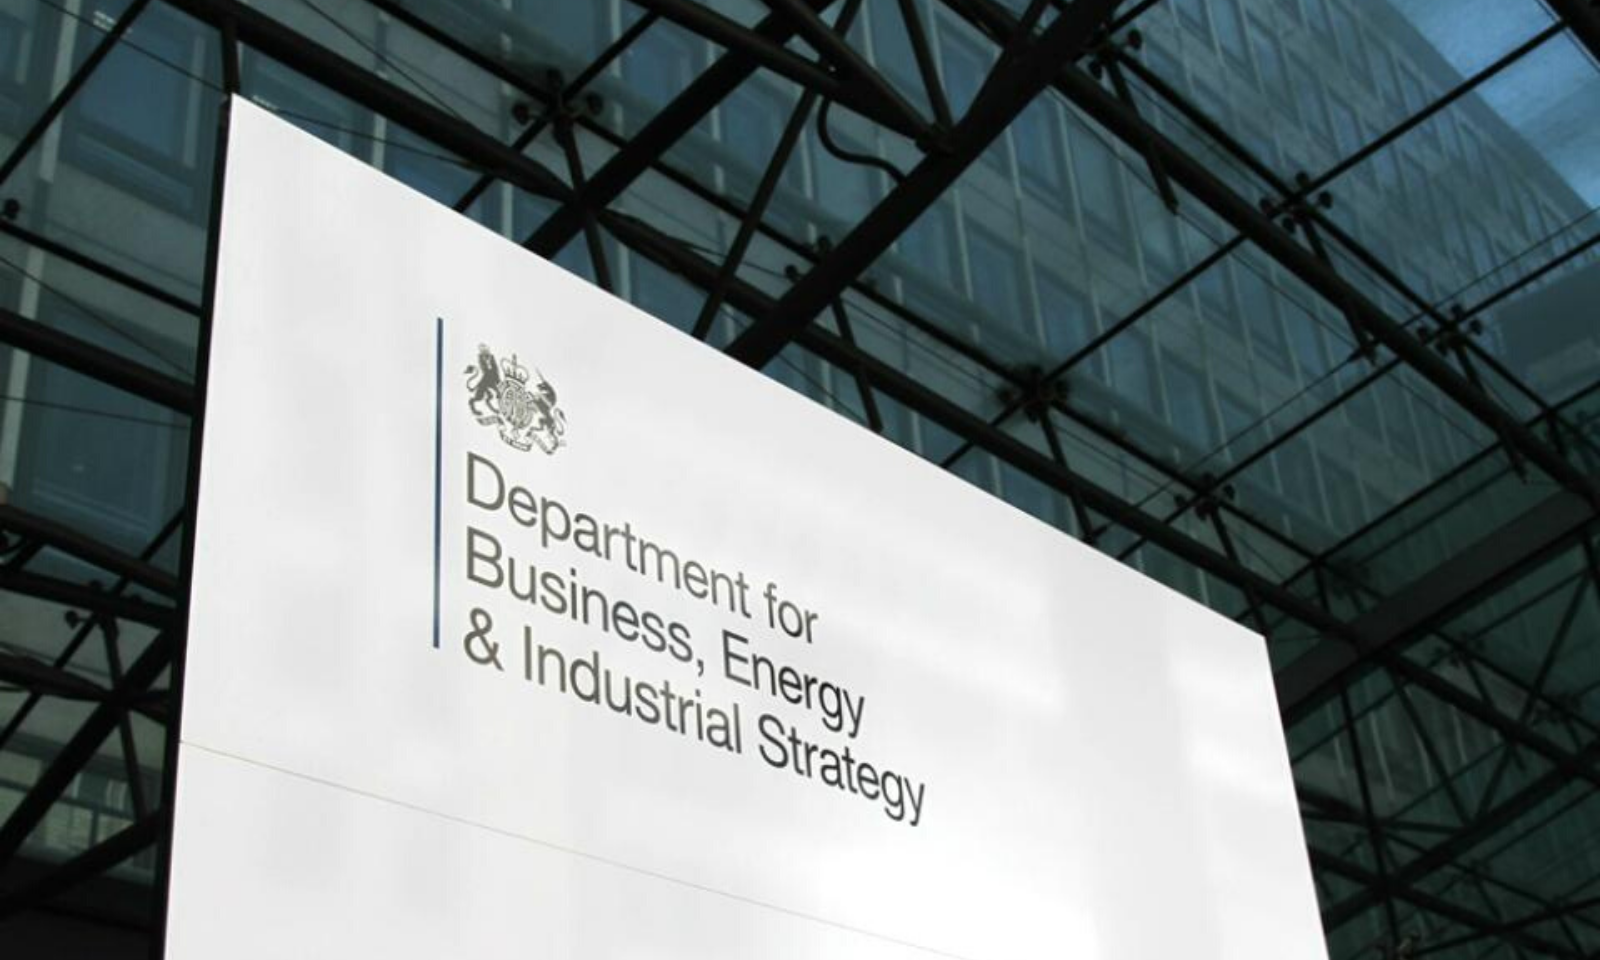 Department for Business, Energy and Industrial Strategy (BEIS) main sign, Victoria Street.